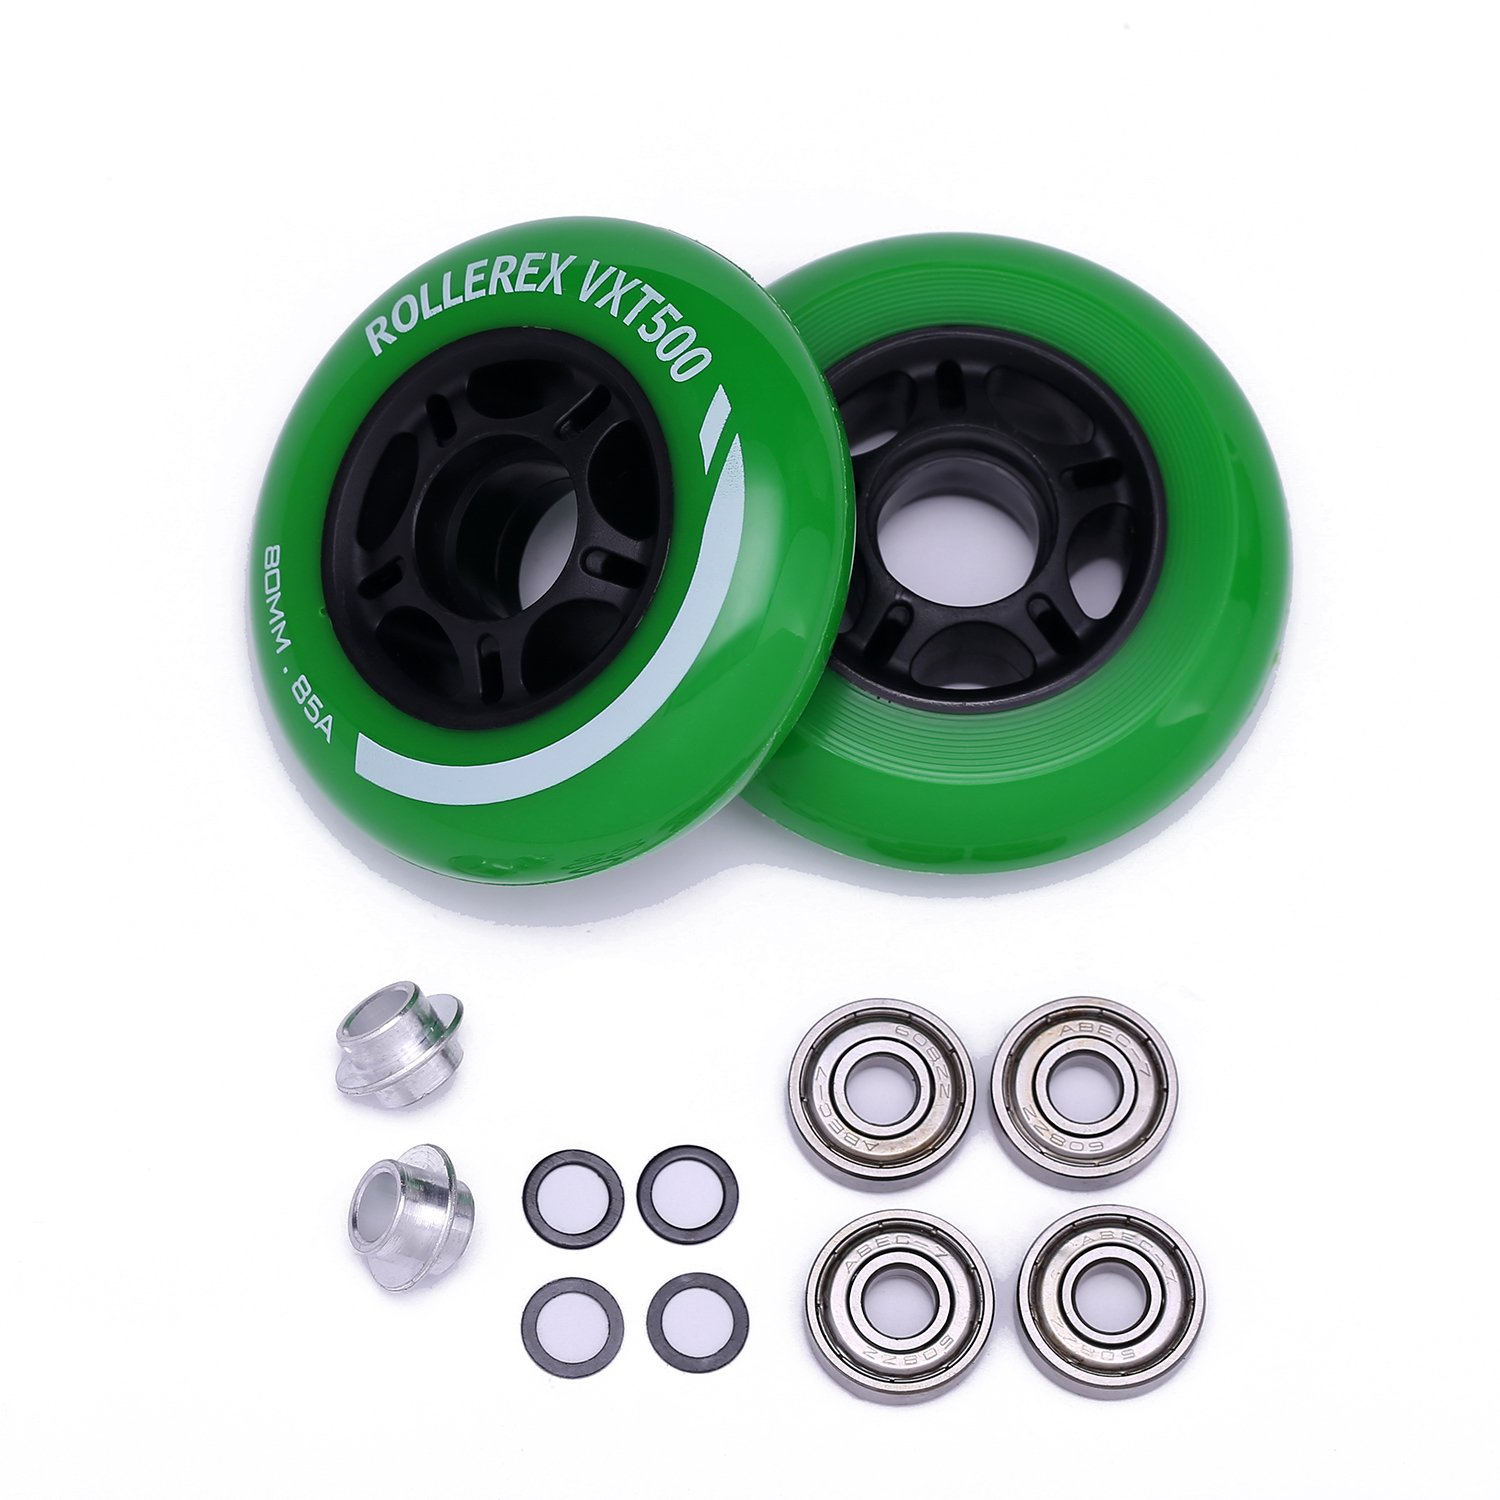 2-Pack w//Bearings, spacers and washers Rollerex VXT500 Inline Skate//Rollerblade Wheels